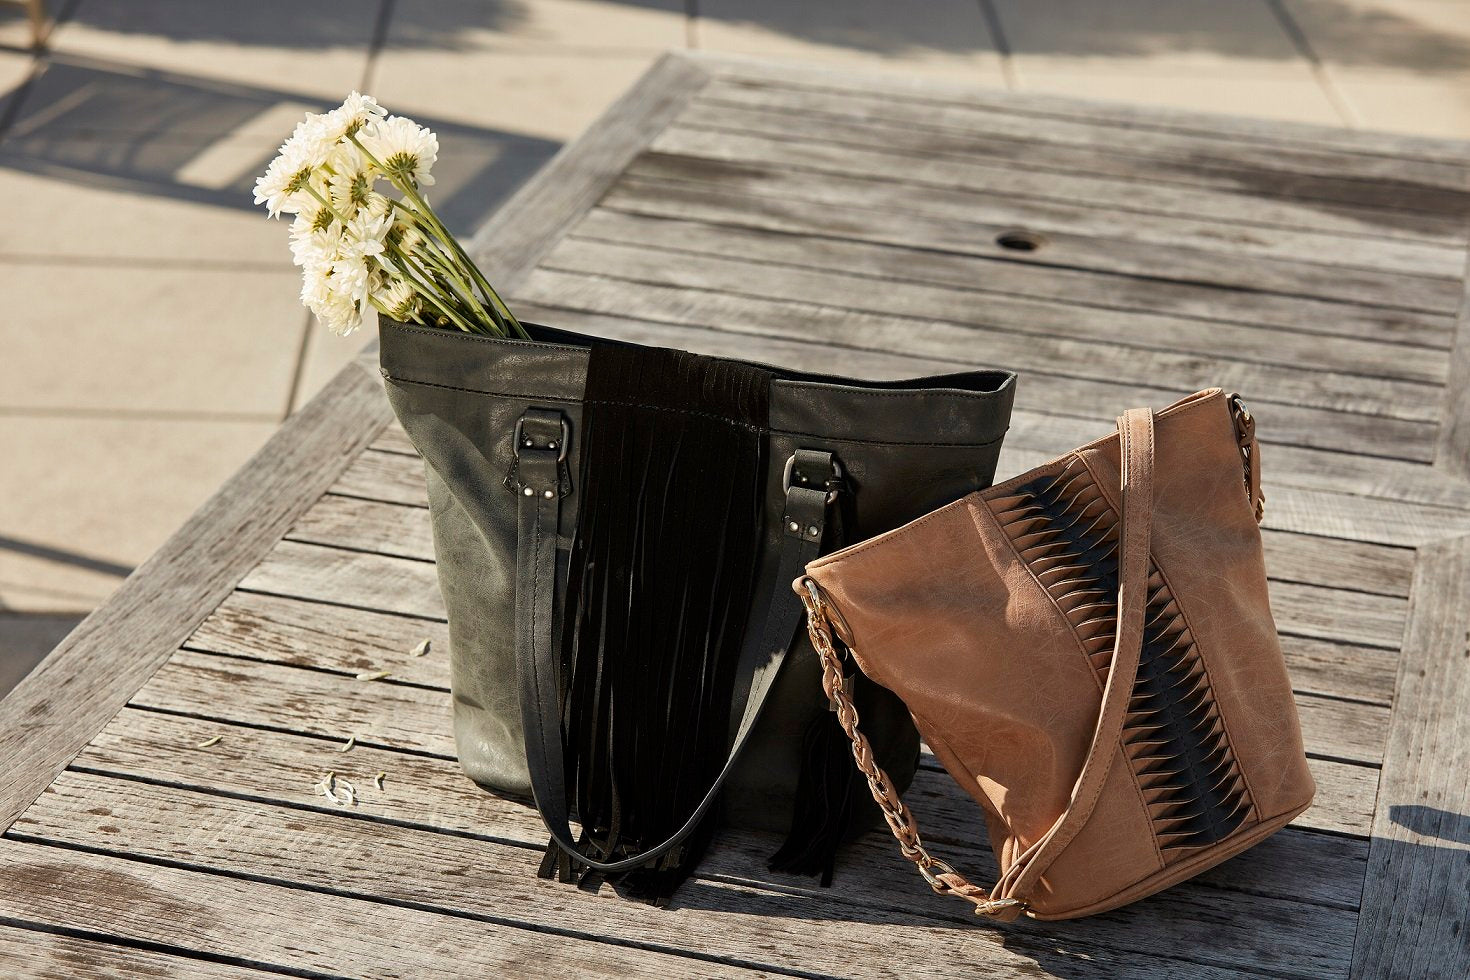 Dolce Vita Collection Handbags x Lindsay Albanese